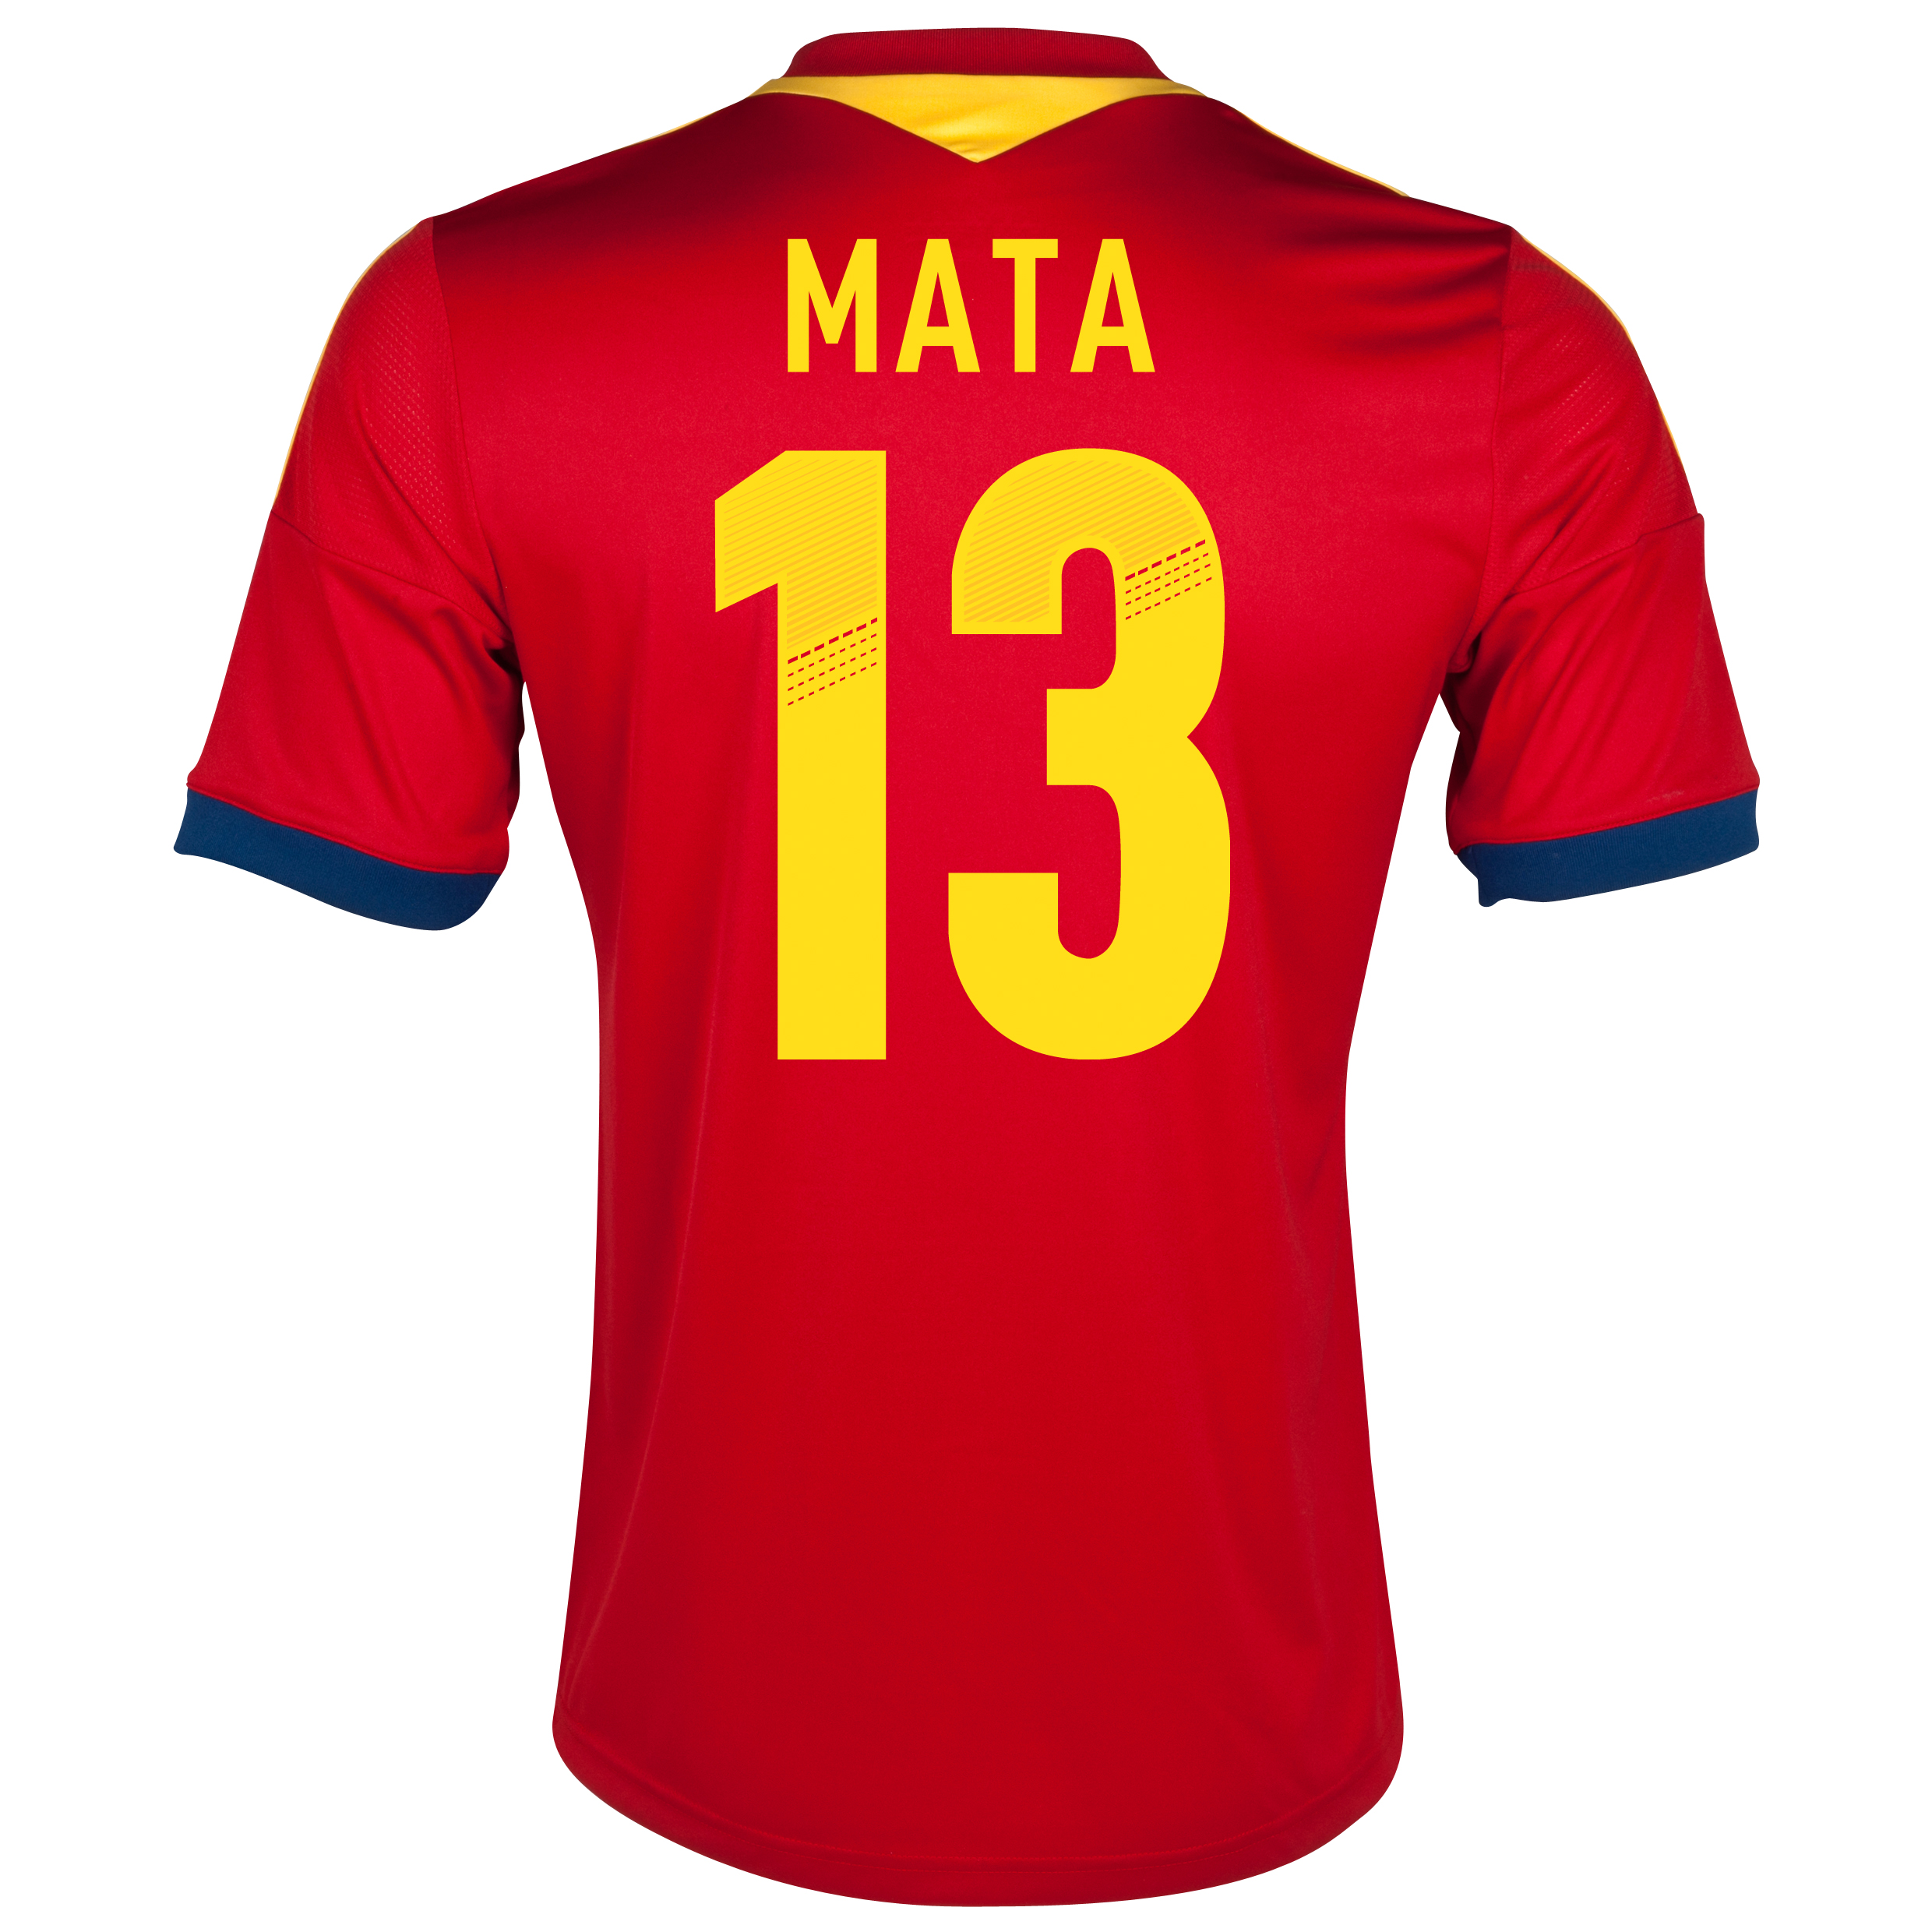 Spain Home Shirt 2013 with Mata 13 printing